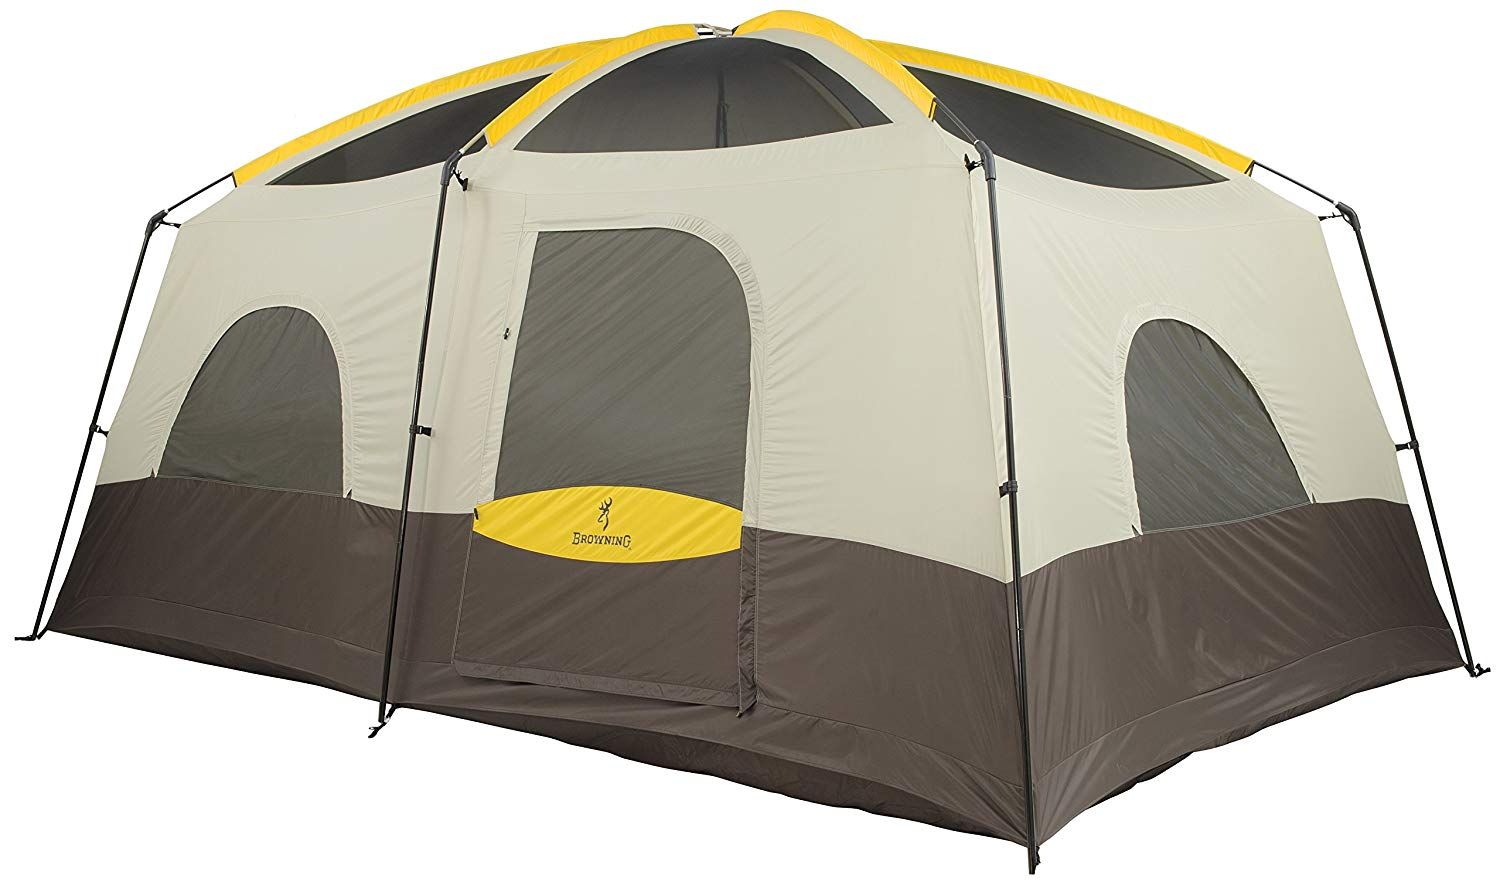 Top 10 Best 10 Person Tent 2021 For The Money Reviews 3